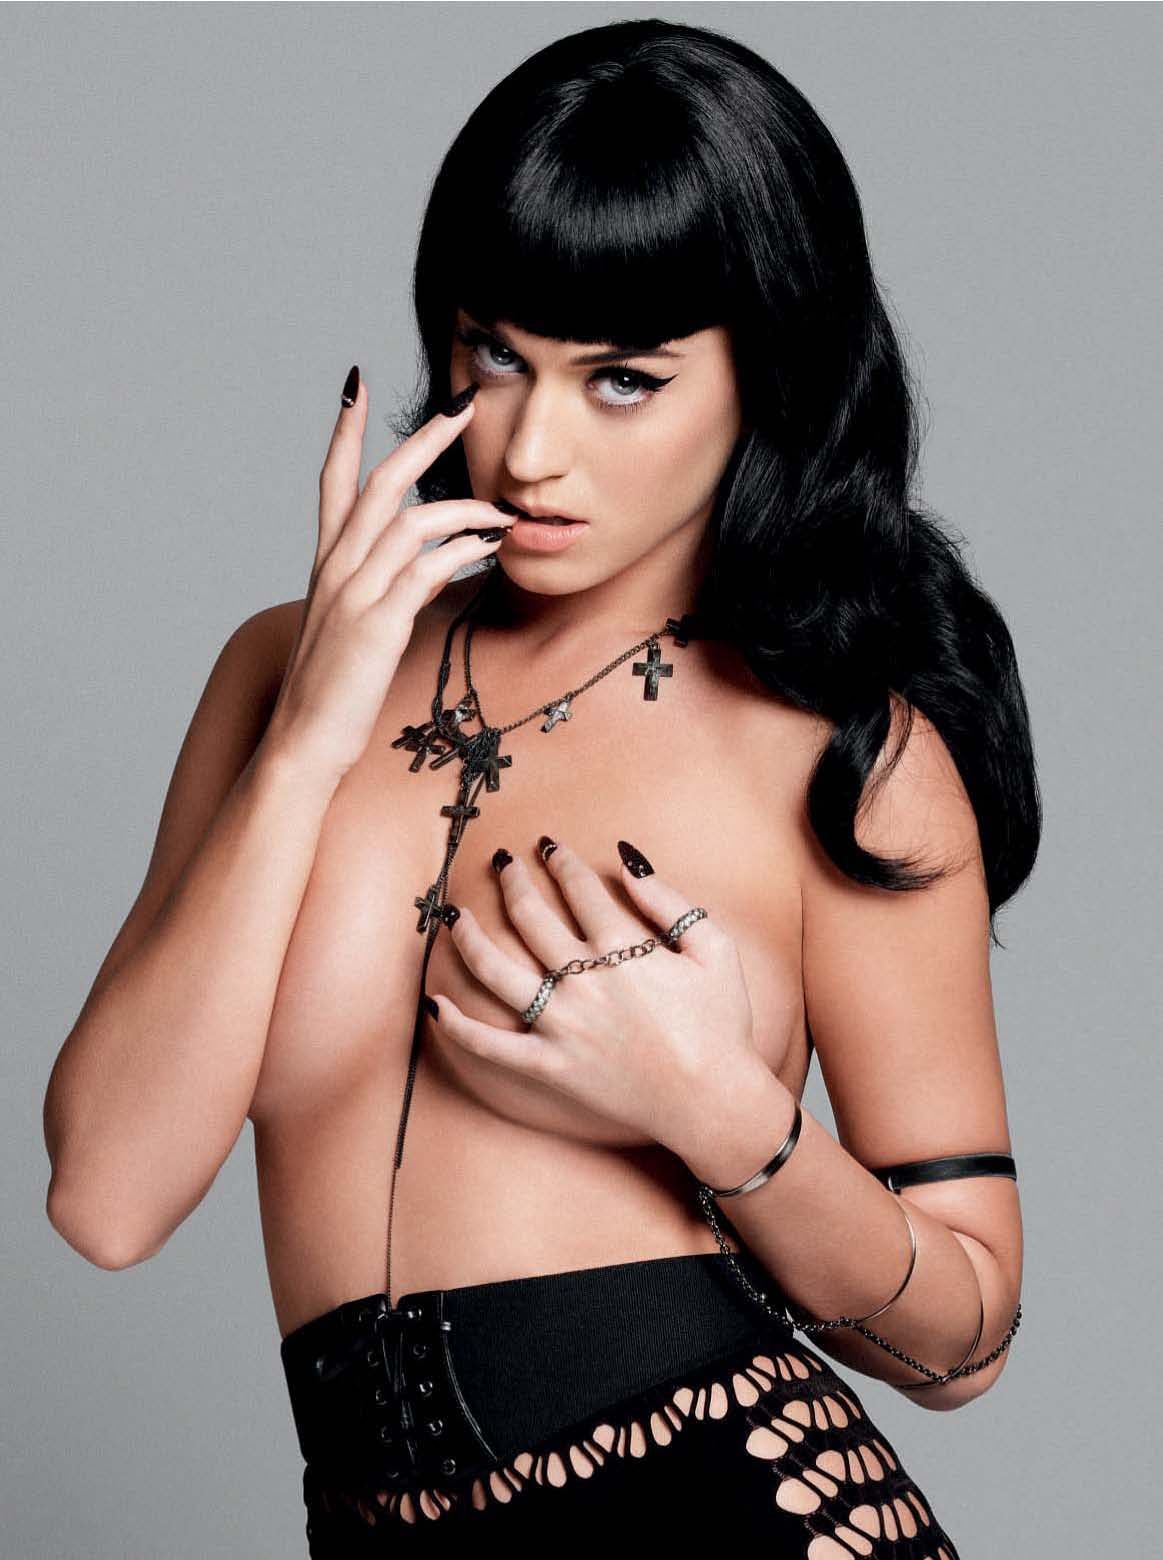 Katy perry beautiful naked galleries 440